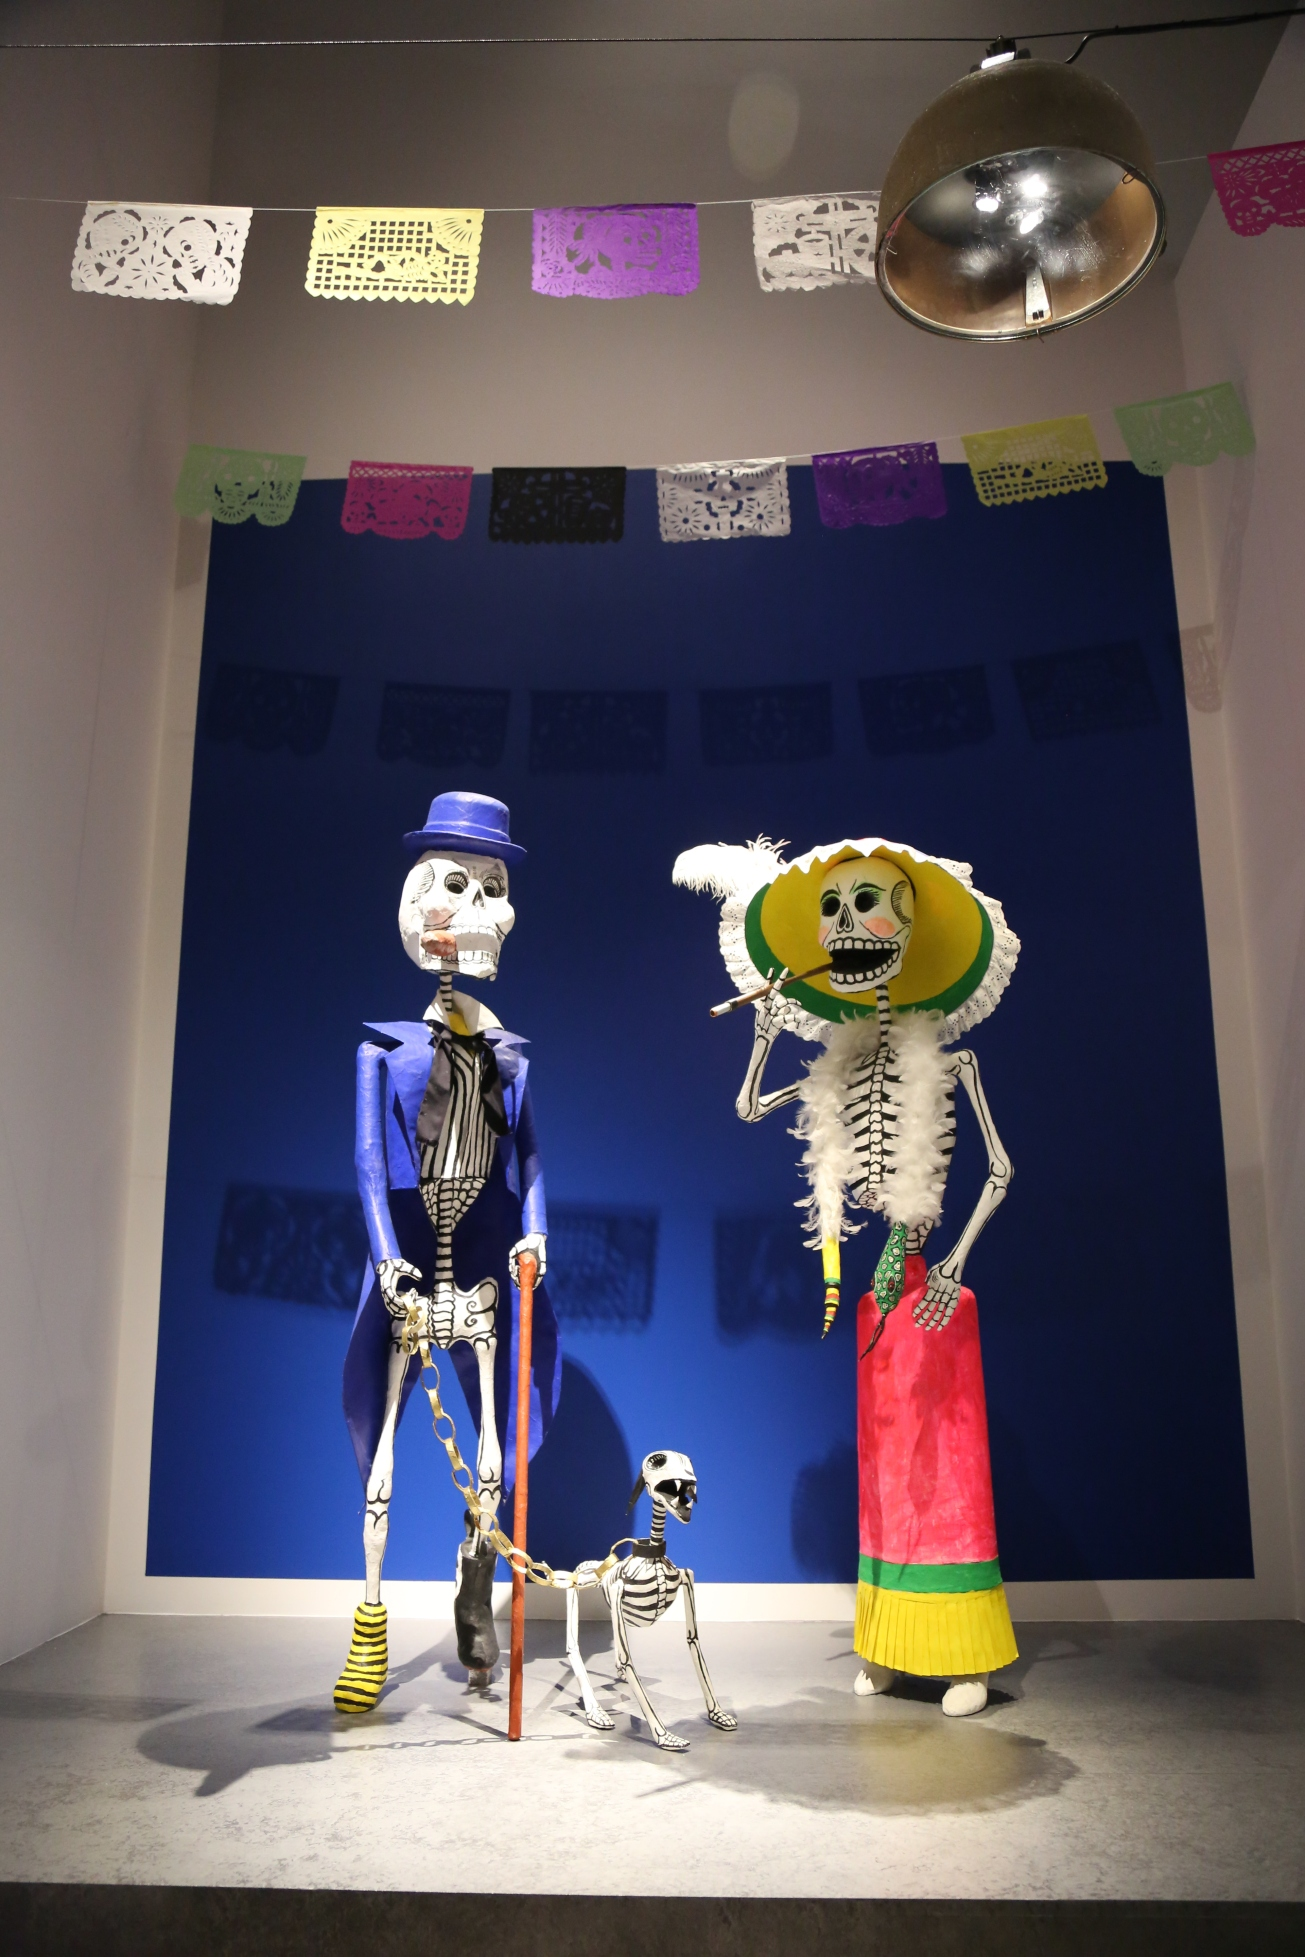 Day of the dead, dia de muertos, la catrina, aztec, Mexico, Moesgaard Museum, momu, collections, death, underworld, skeleton, skull, Mictēcacihuātl